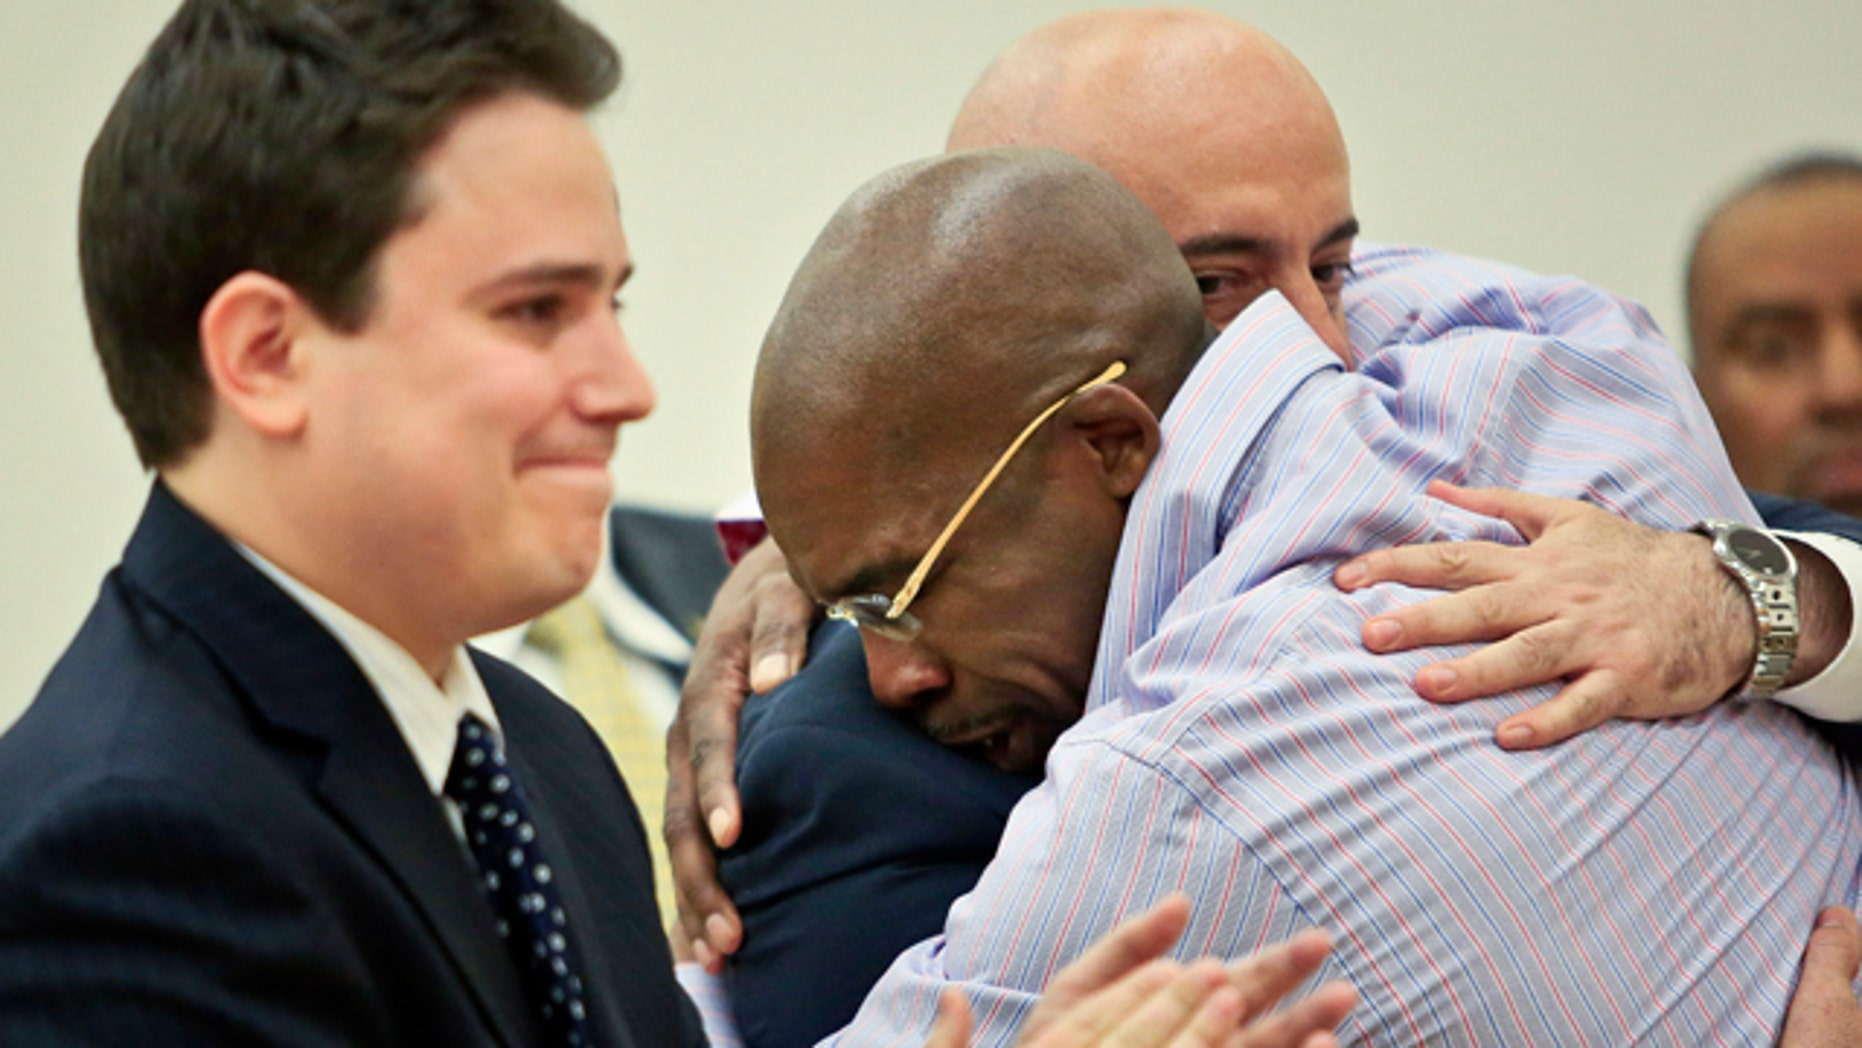 April 8, 2014: Jonathan Fleming, hugs his attorney Anthony Mayol while his other attorney Taylor Koss applaud in Brooklyn's Supreme Court, after a judge declared him a free man.  Fleming, who spent almost a quarter-century behind bars for murder, was cleared of a killing that happened when he was 1,100 miles away on a Disney World vacation in 1989. (AP Photo/Bebeto Matthews)